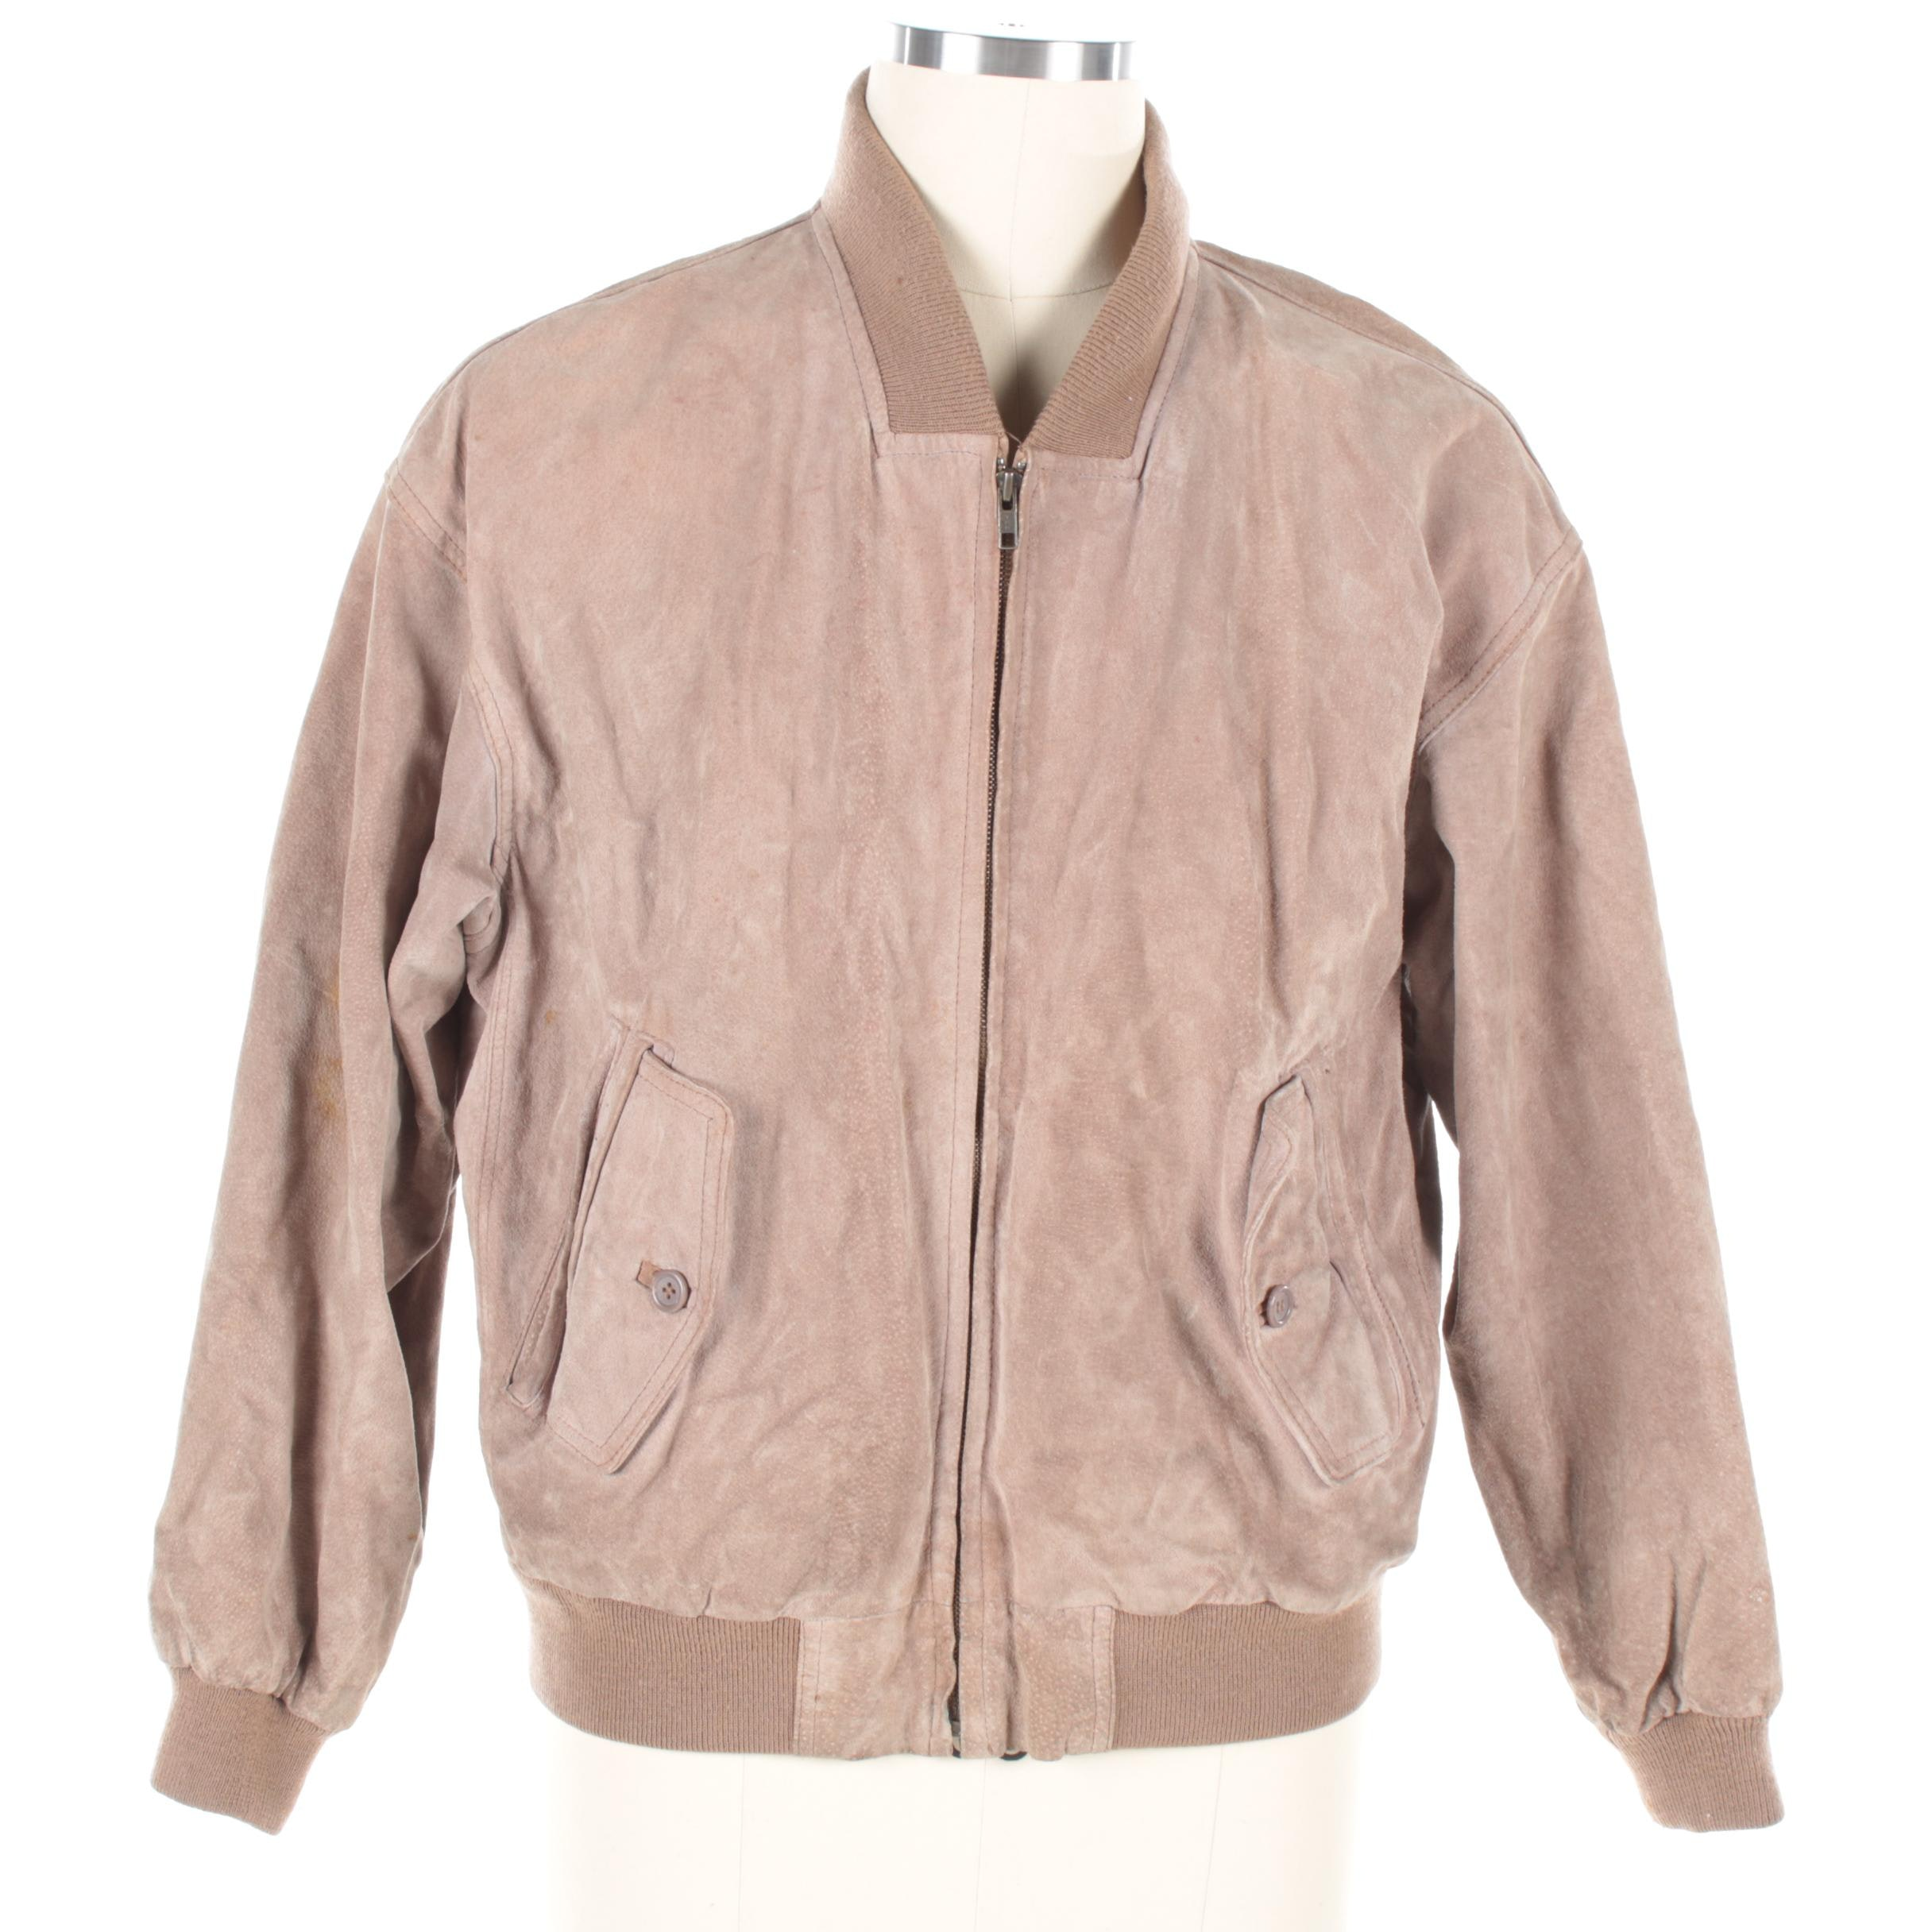 Vintage Neiman Marcus Tan Suede Bomber Style Jacket